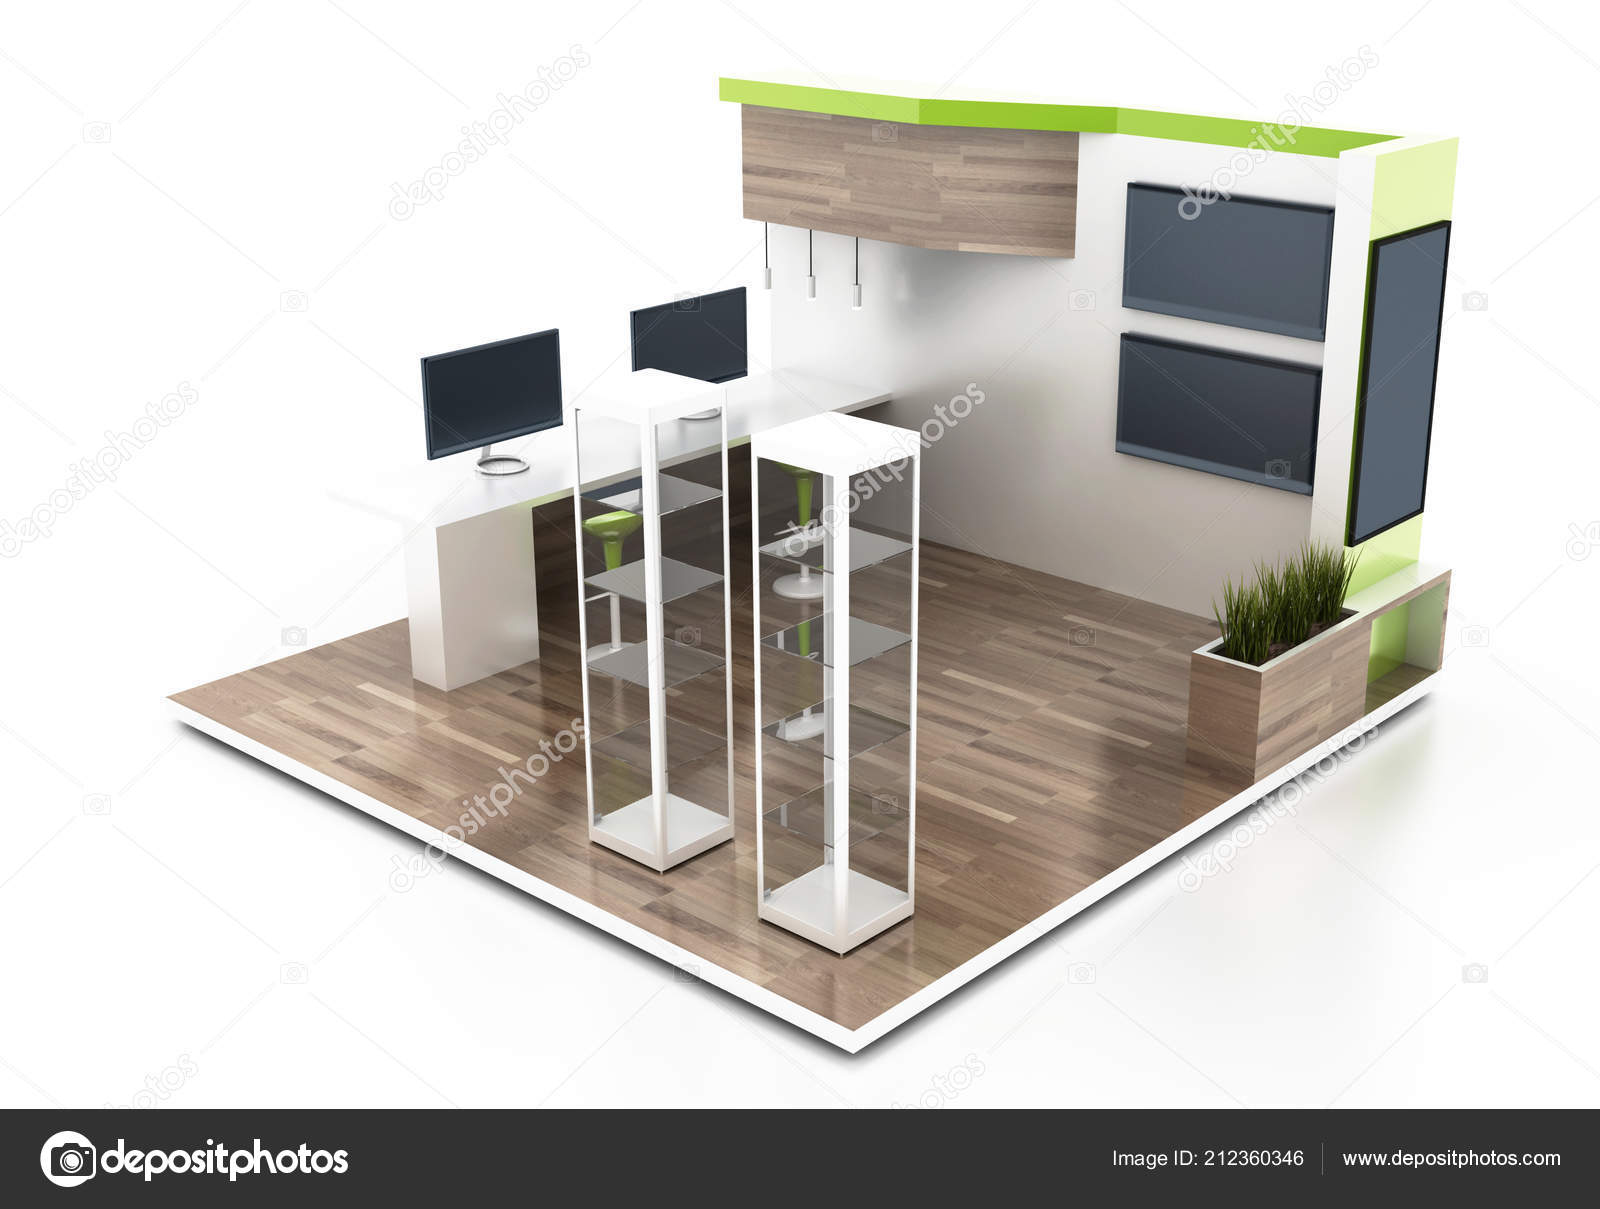 Exhibition Stand Free D Model : Exhibition stand white original rendering models u2014 stock photo